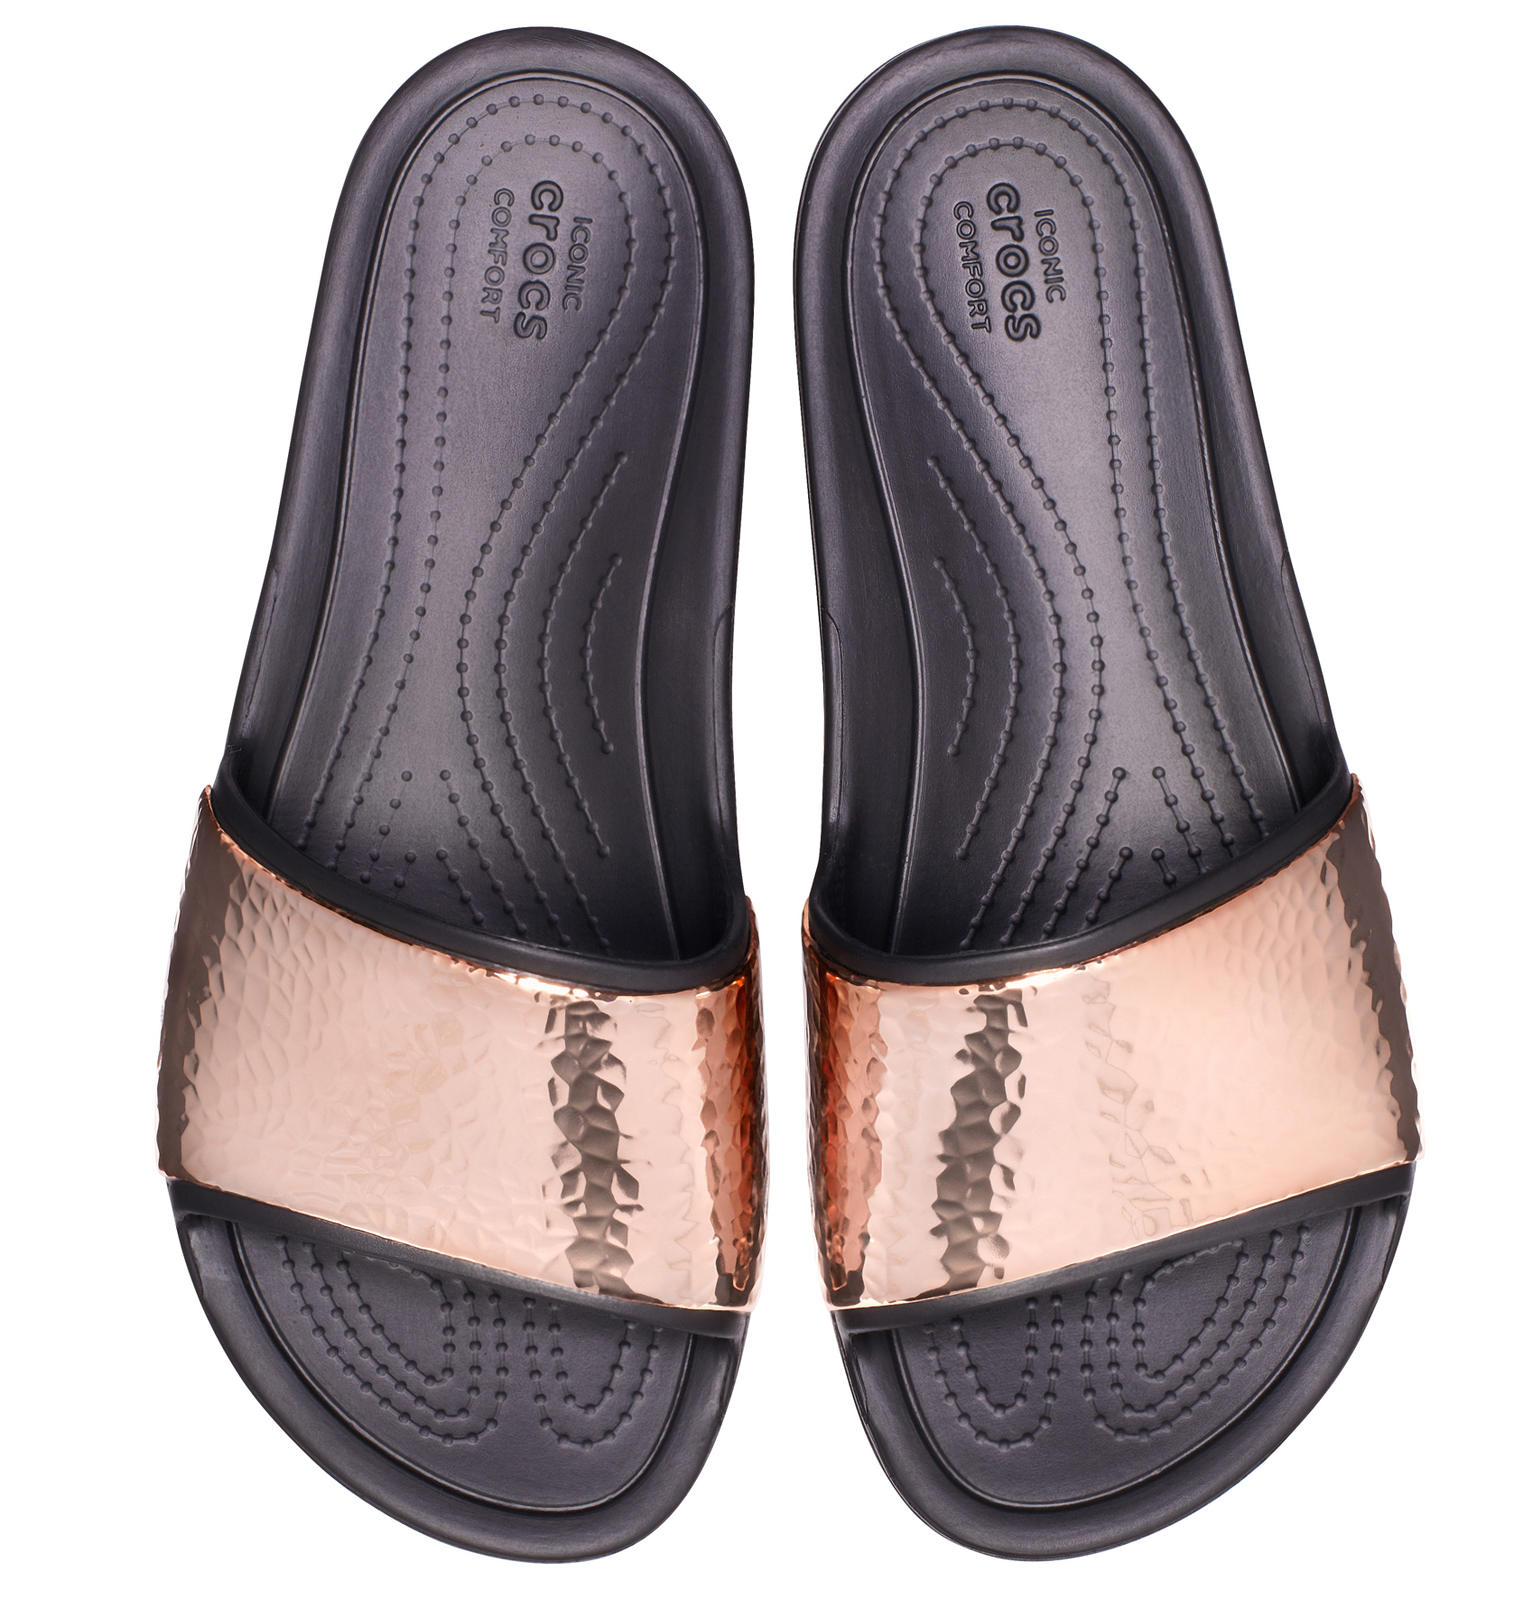 Crocs černé pantofle Sloane Hammered Met Slide Black/Rose Gold